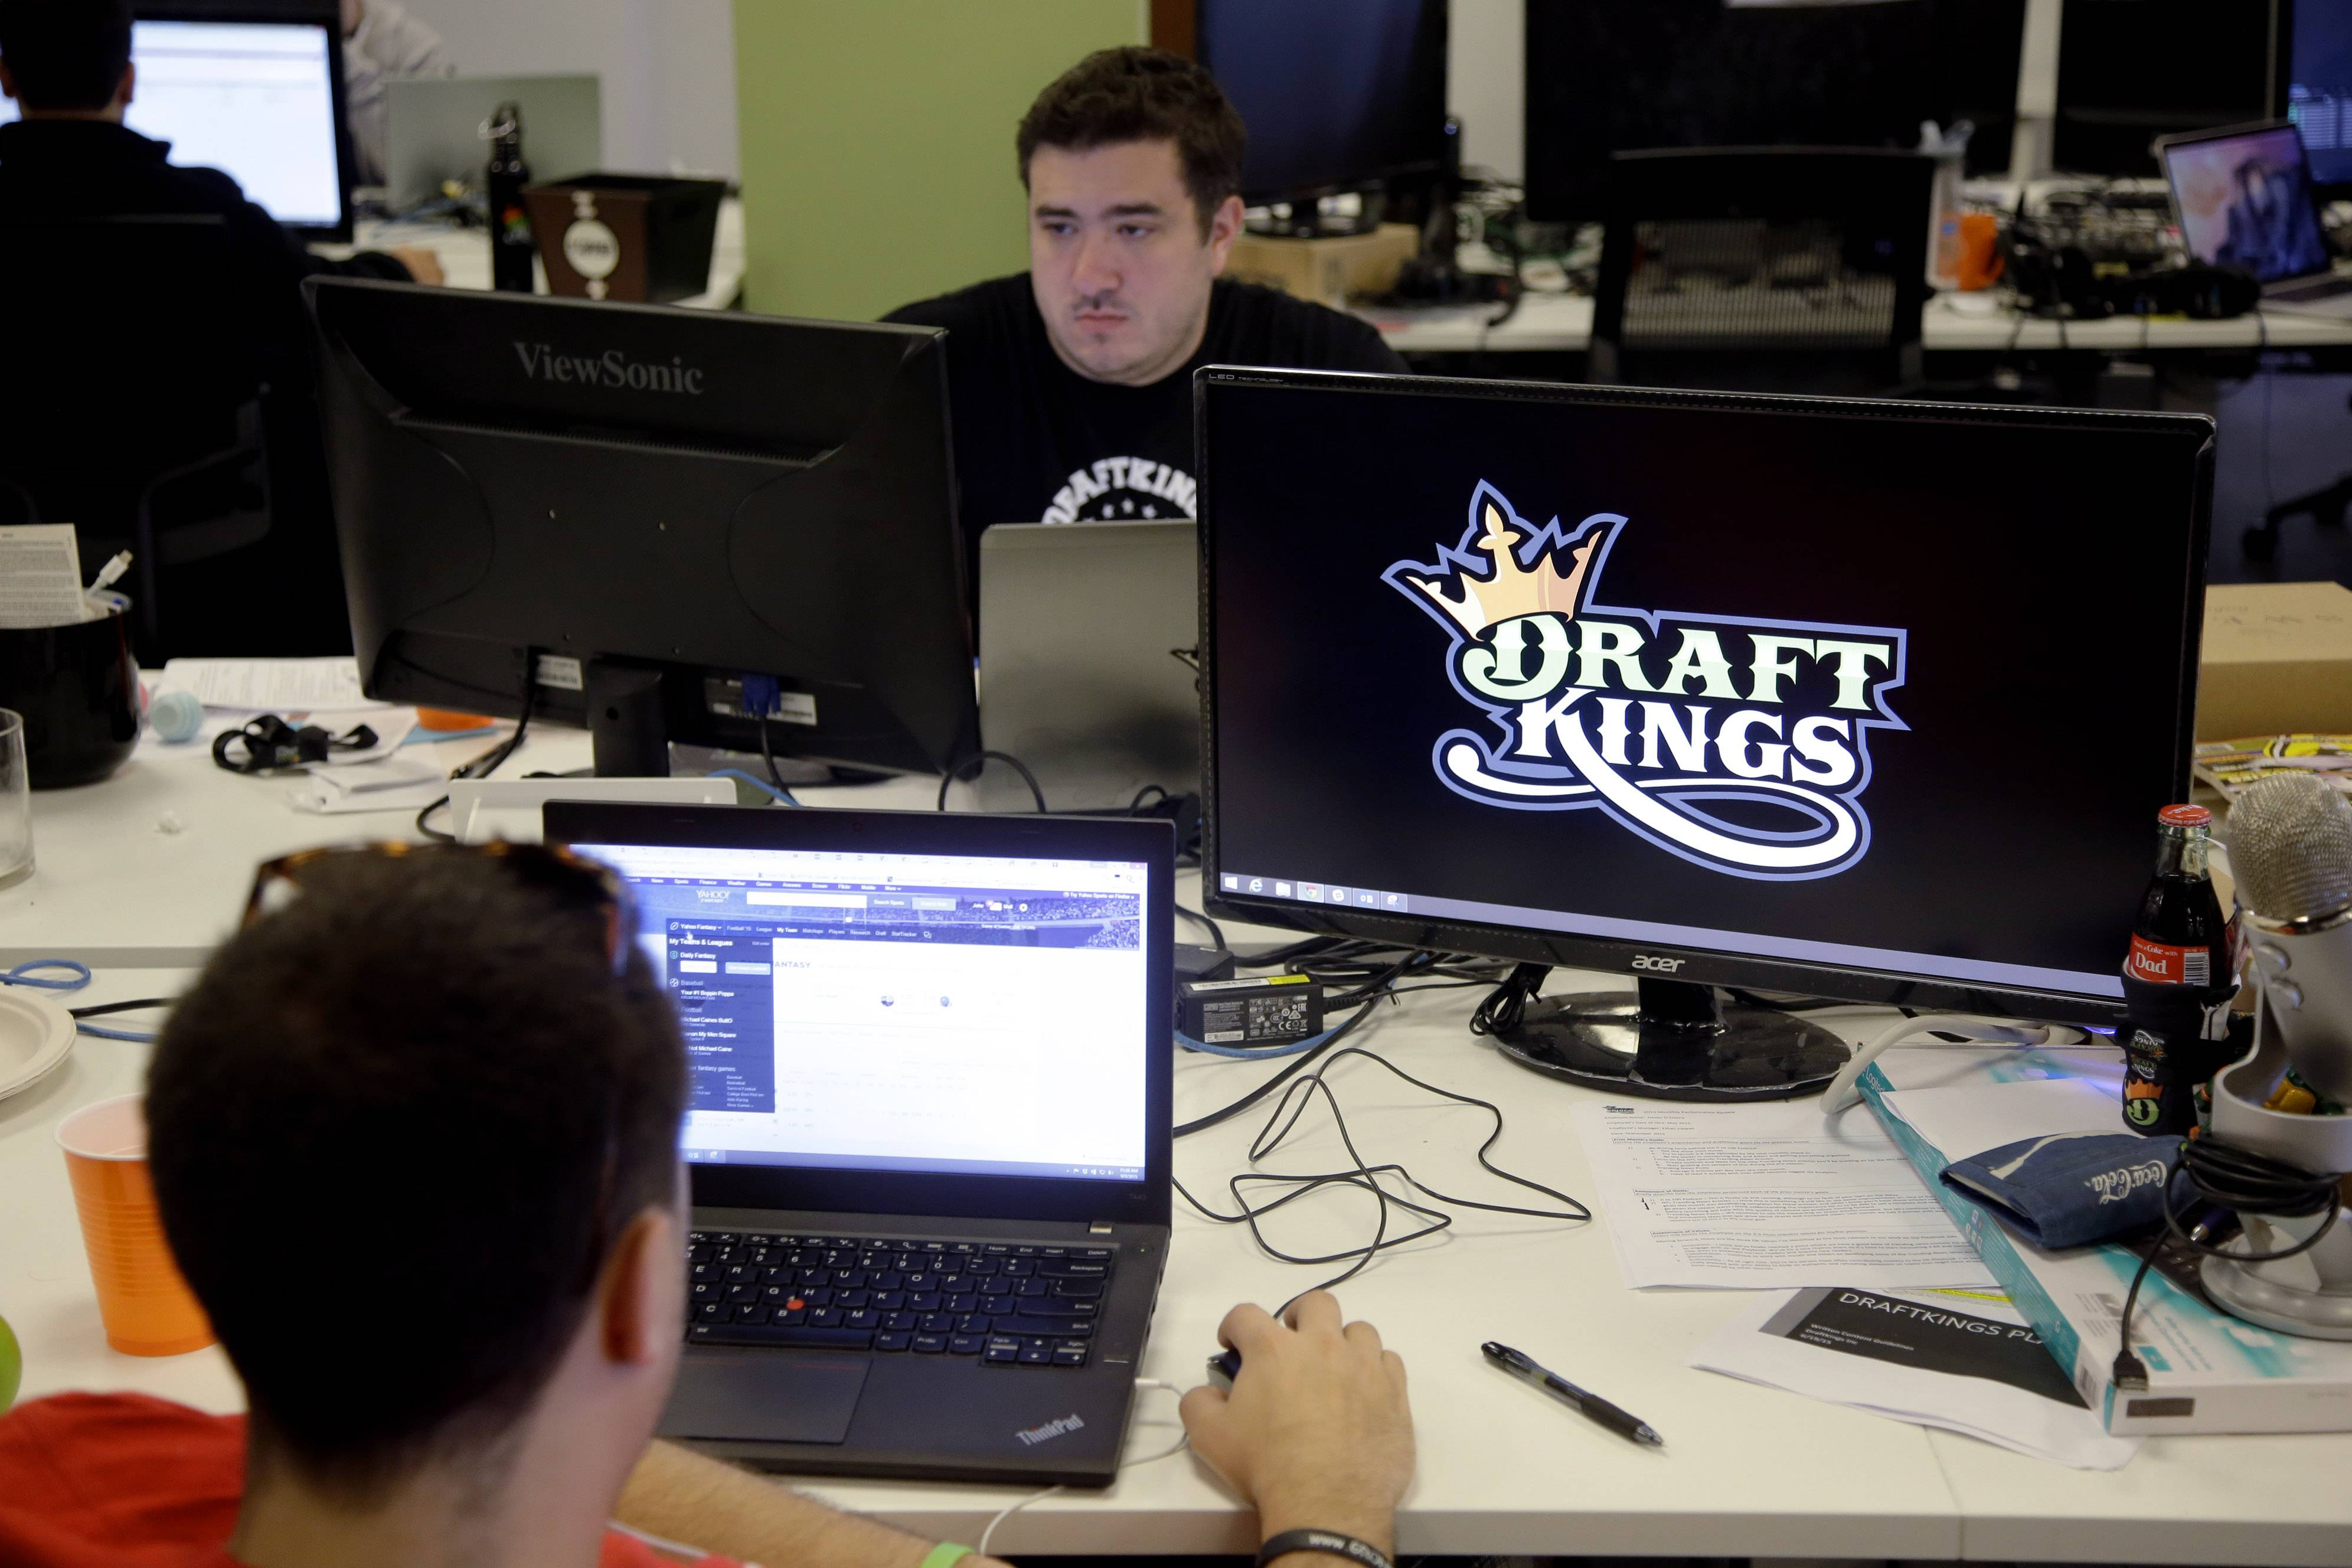 FILE- In this Sept. 9, 2015, file photo, Len Don Diego, marketing manager for content at DraftKings, a daily fantasy sports company, works at his station at the company's offices in Boston. The daily fantasy sports industry is eyeing a breakout season as NFL games begin. And its two dominant companies, DraftKings and FanDuel, are touting lucrative opening week prizes to try to draw more customers as more competitors pop up.